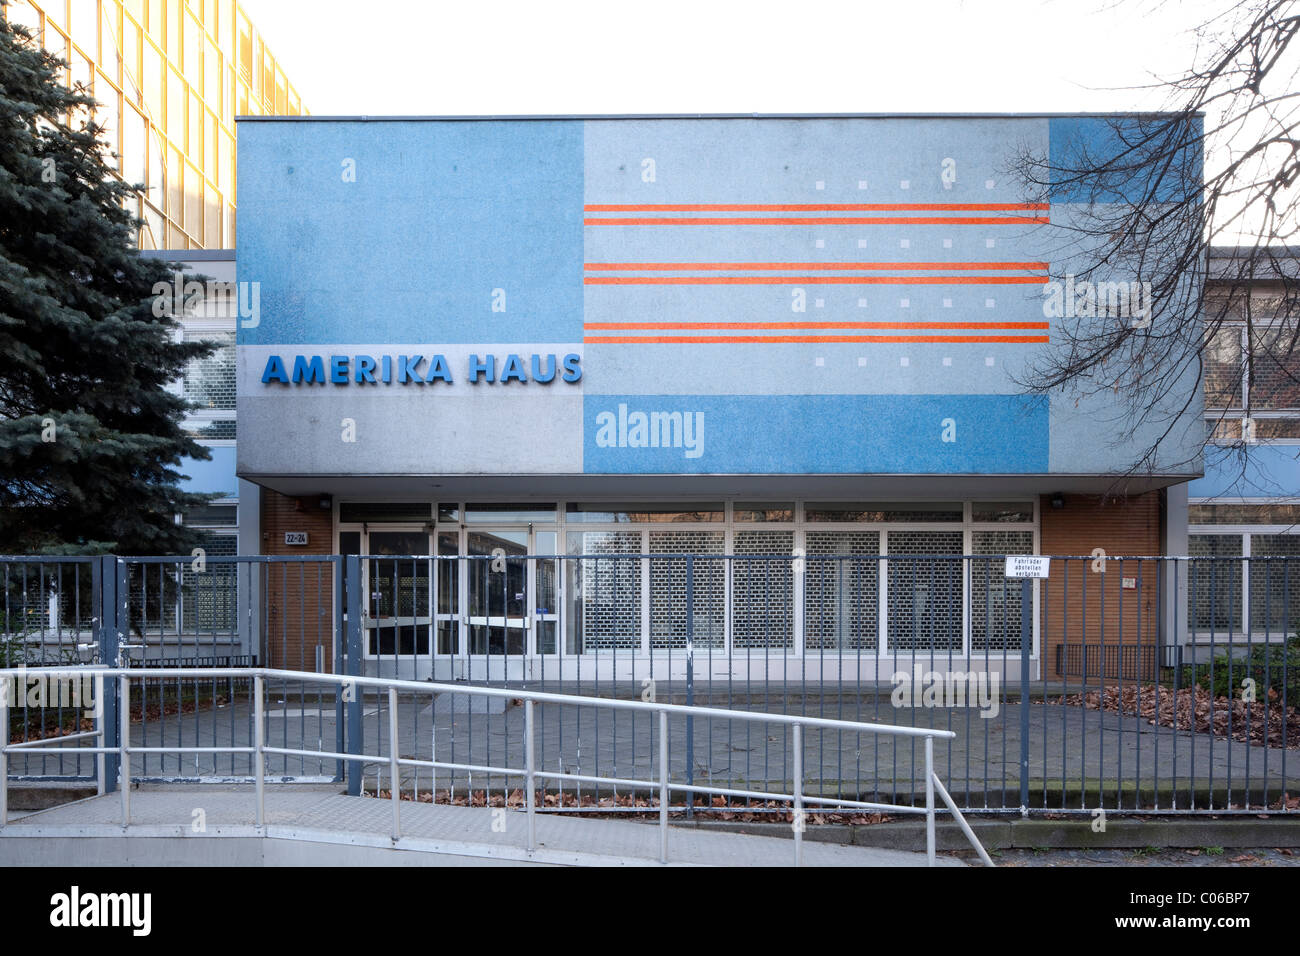 Amerika Haus, a cultural center of the USA, Charlottenburg district, Berlin, Germany, Europe - Stock Image